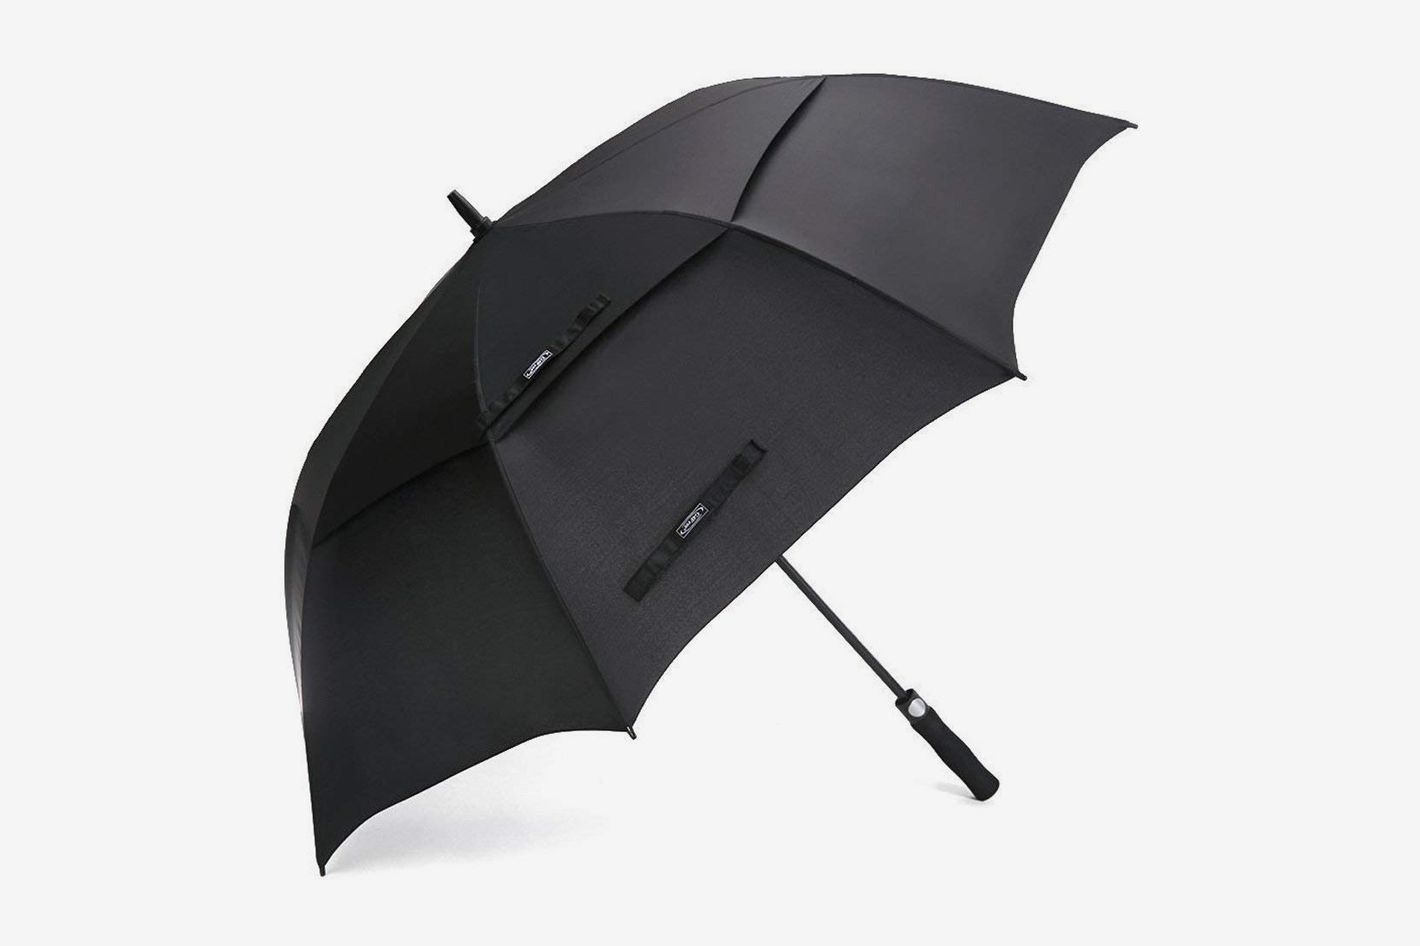 G4Free 68 Inch Automatic Open Golf Umbrella Double Canopy Extra Large Oversize Windproof Waterproof Stick Umbrella